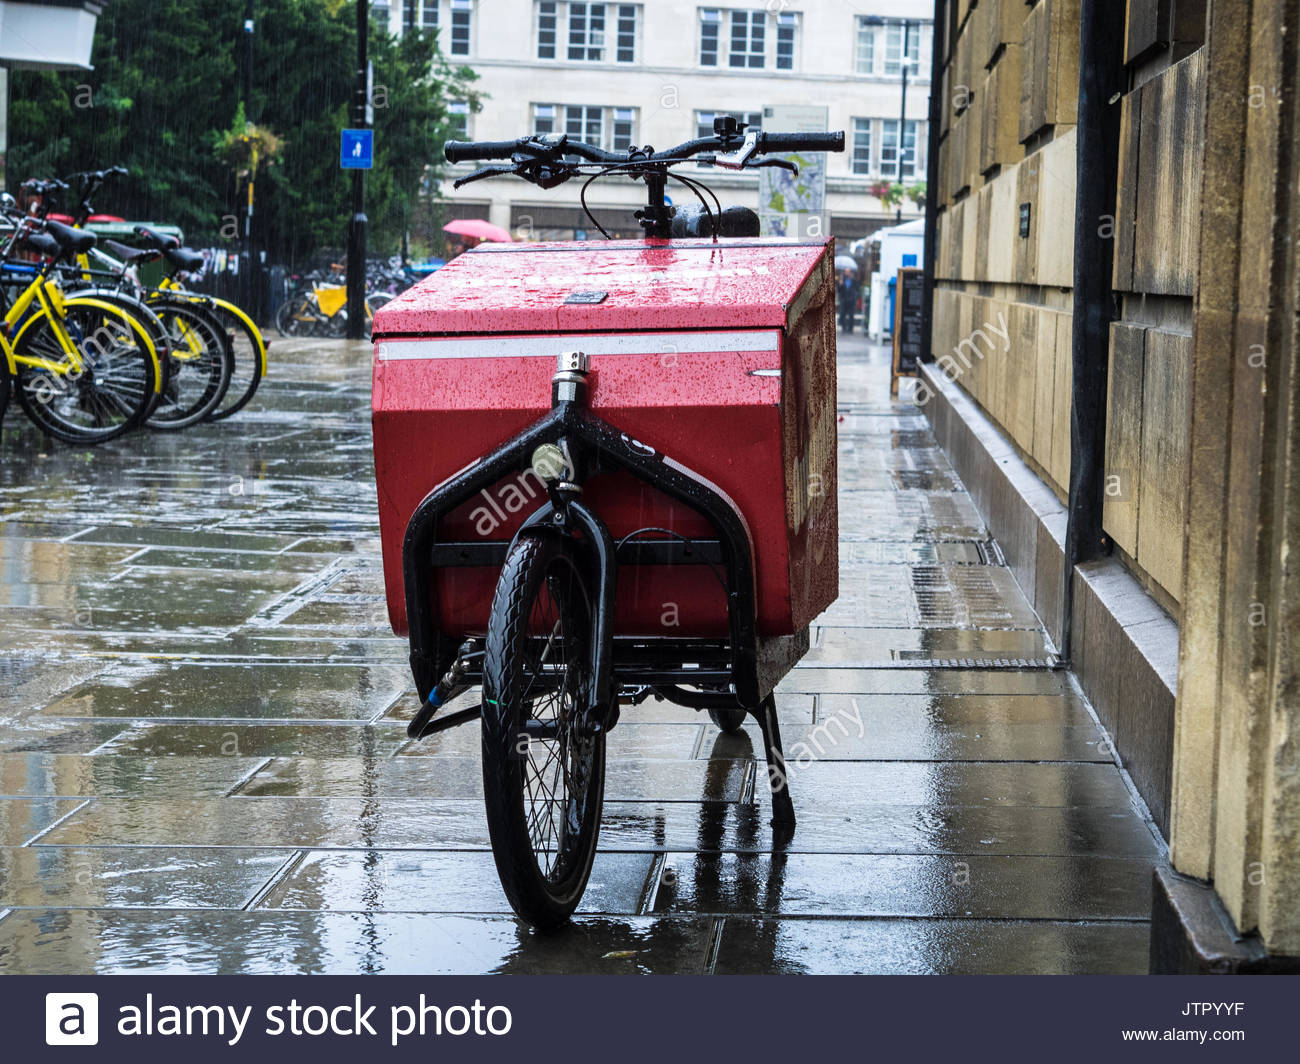 Cargo Bike Delivery - Cargo bike from the Outspoken last mile logistics company sits in the rain in Cambridge UK - Stock Image